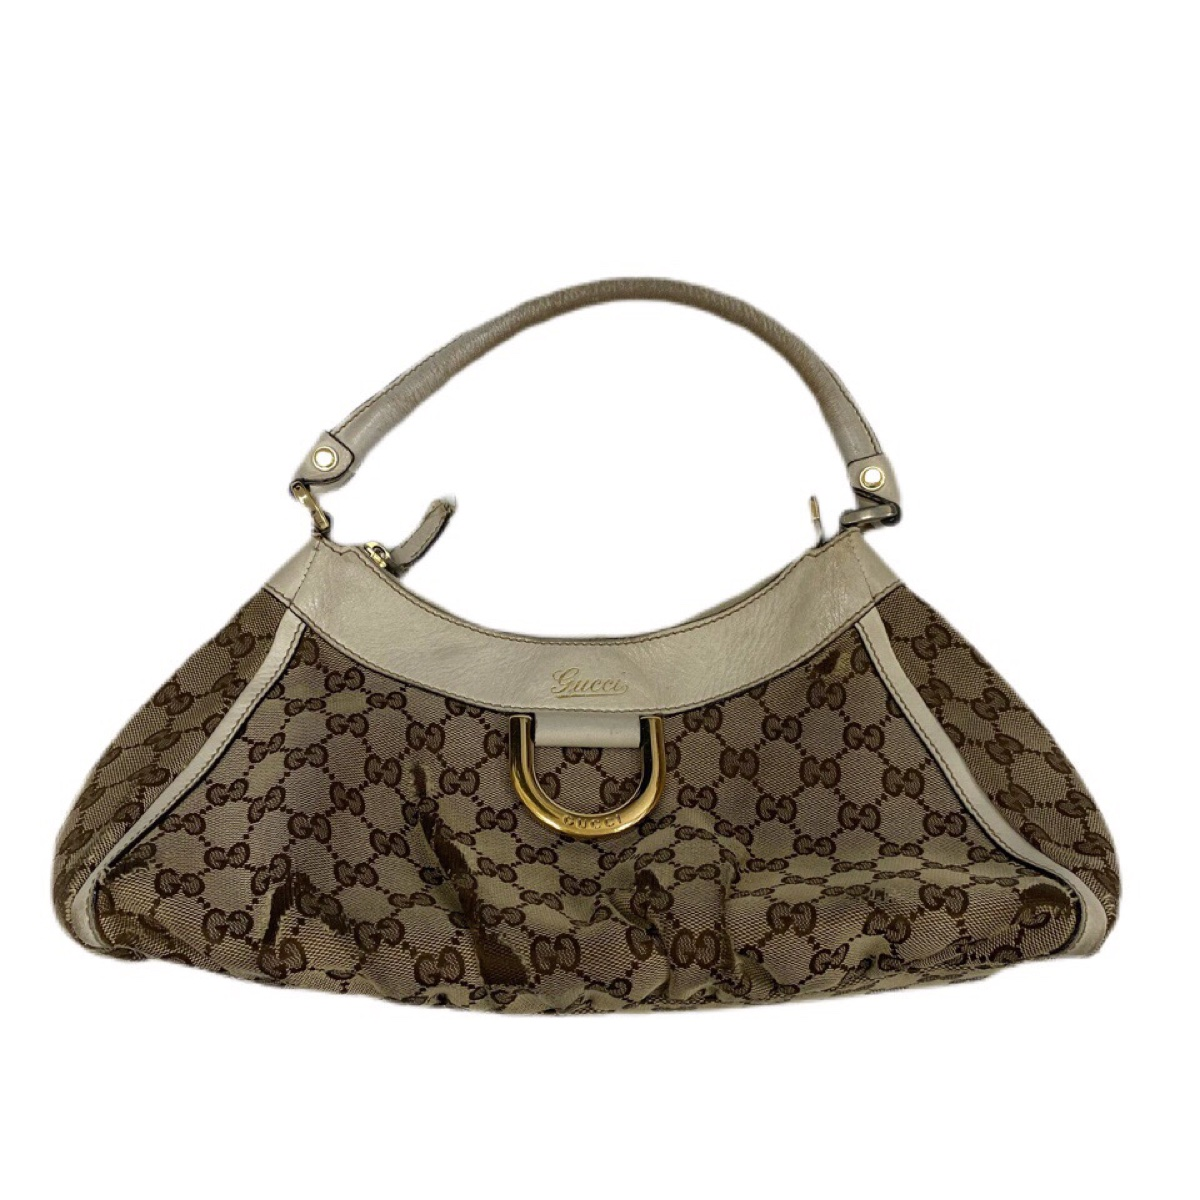 Authentic Gucci vintage beige GG handbag